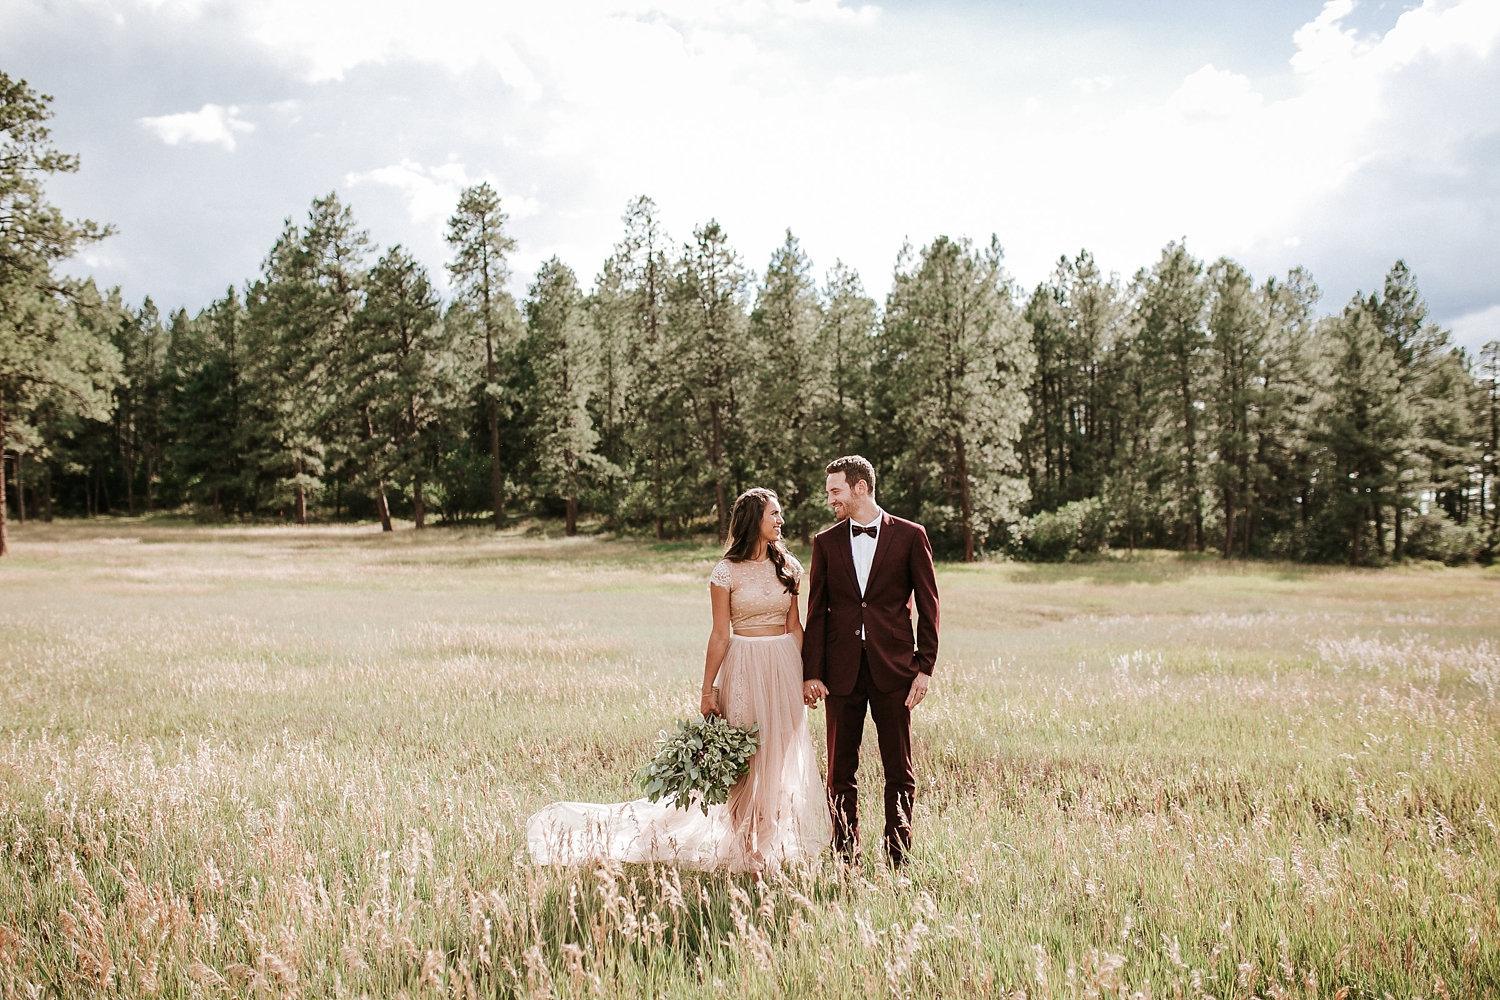 Alicia+lucia+photography+-+albuquerque+wedding+photographer+-+santa+fe+wedding+photography+-+new+mexico+wedding+photographer+-+pagosa+springs+wedding+-+destination+wedding_0038.jpg